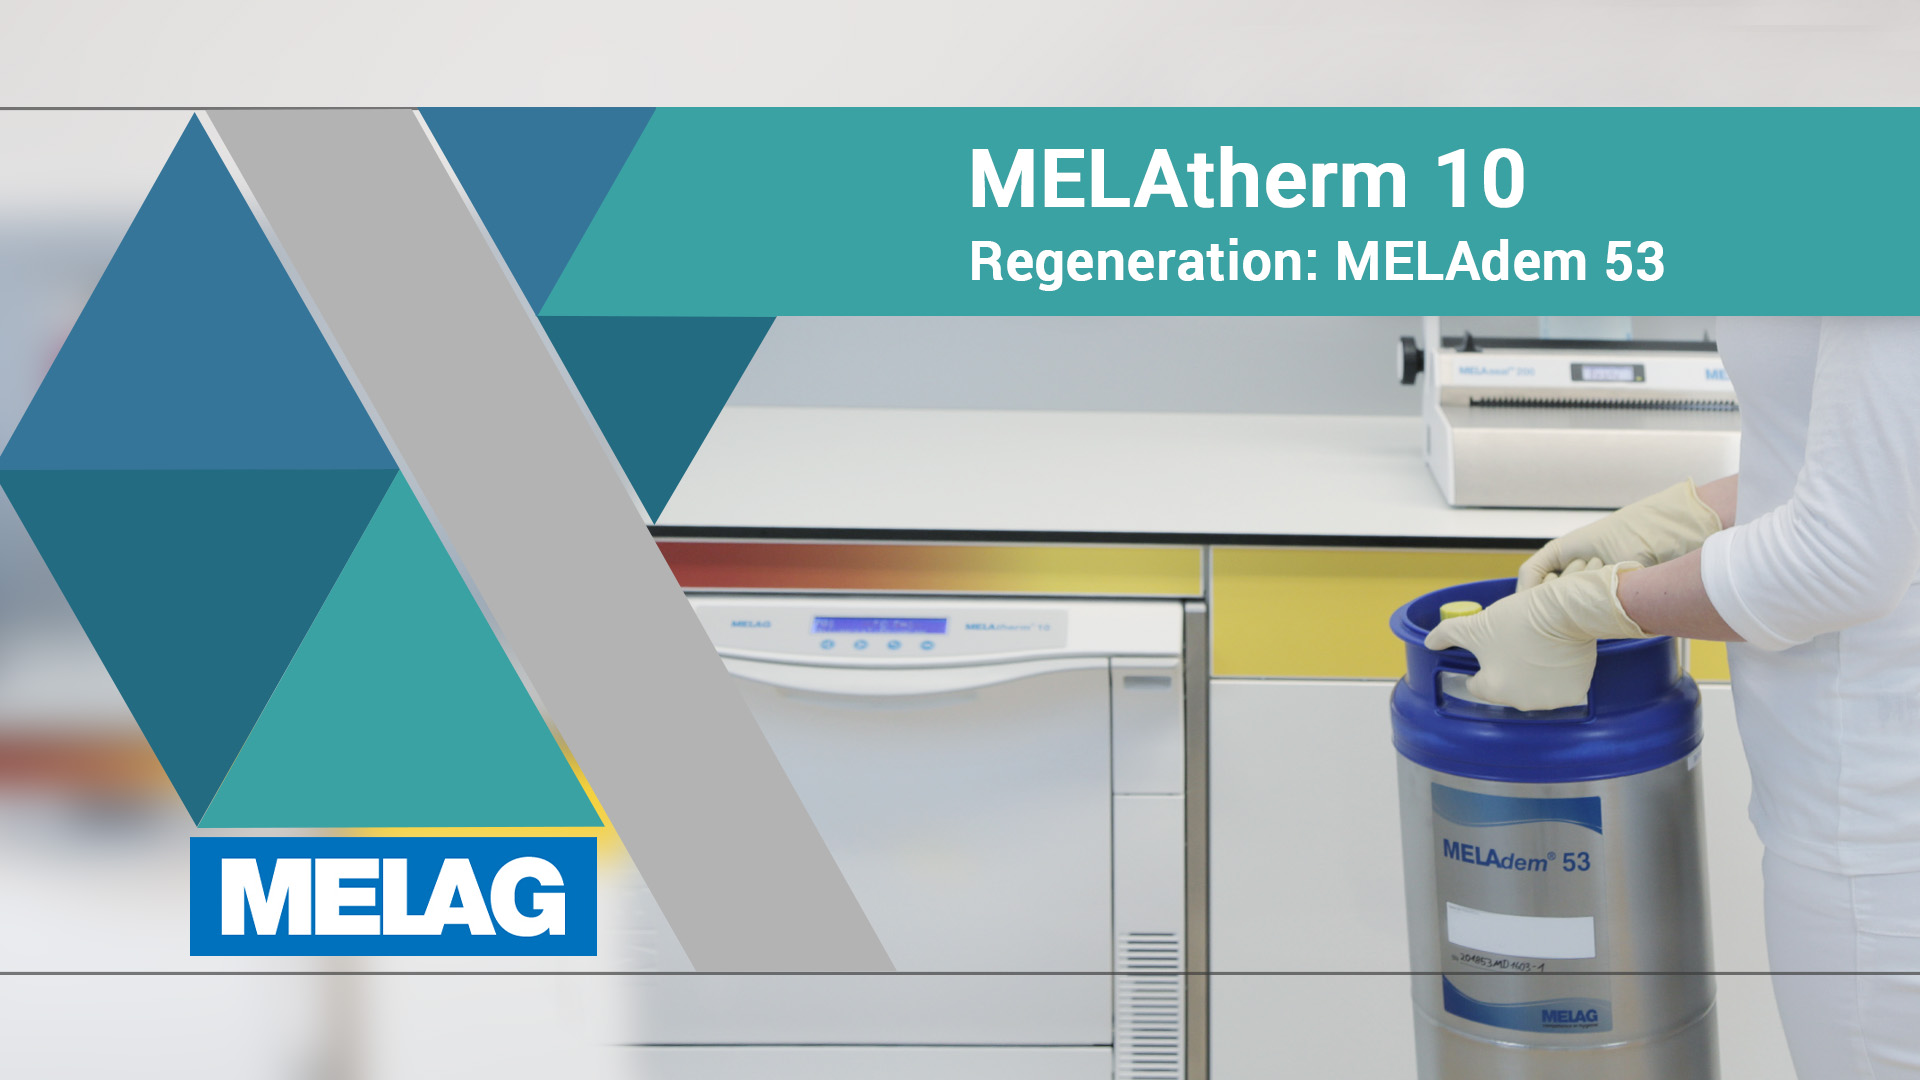 Video-Tutorial MELatherm 10 Regeneration der MELadem 53